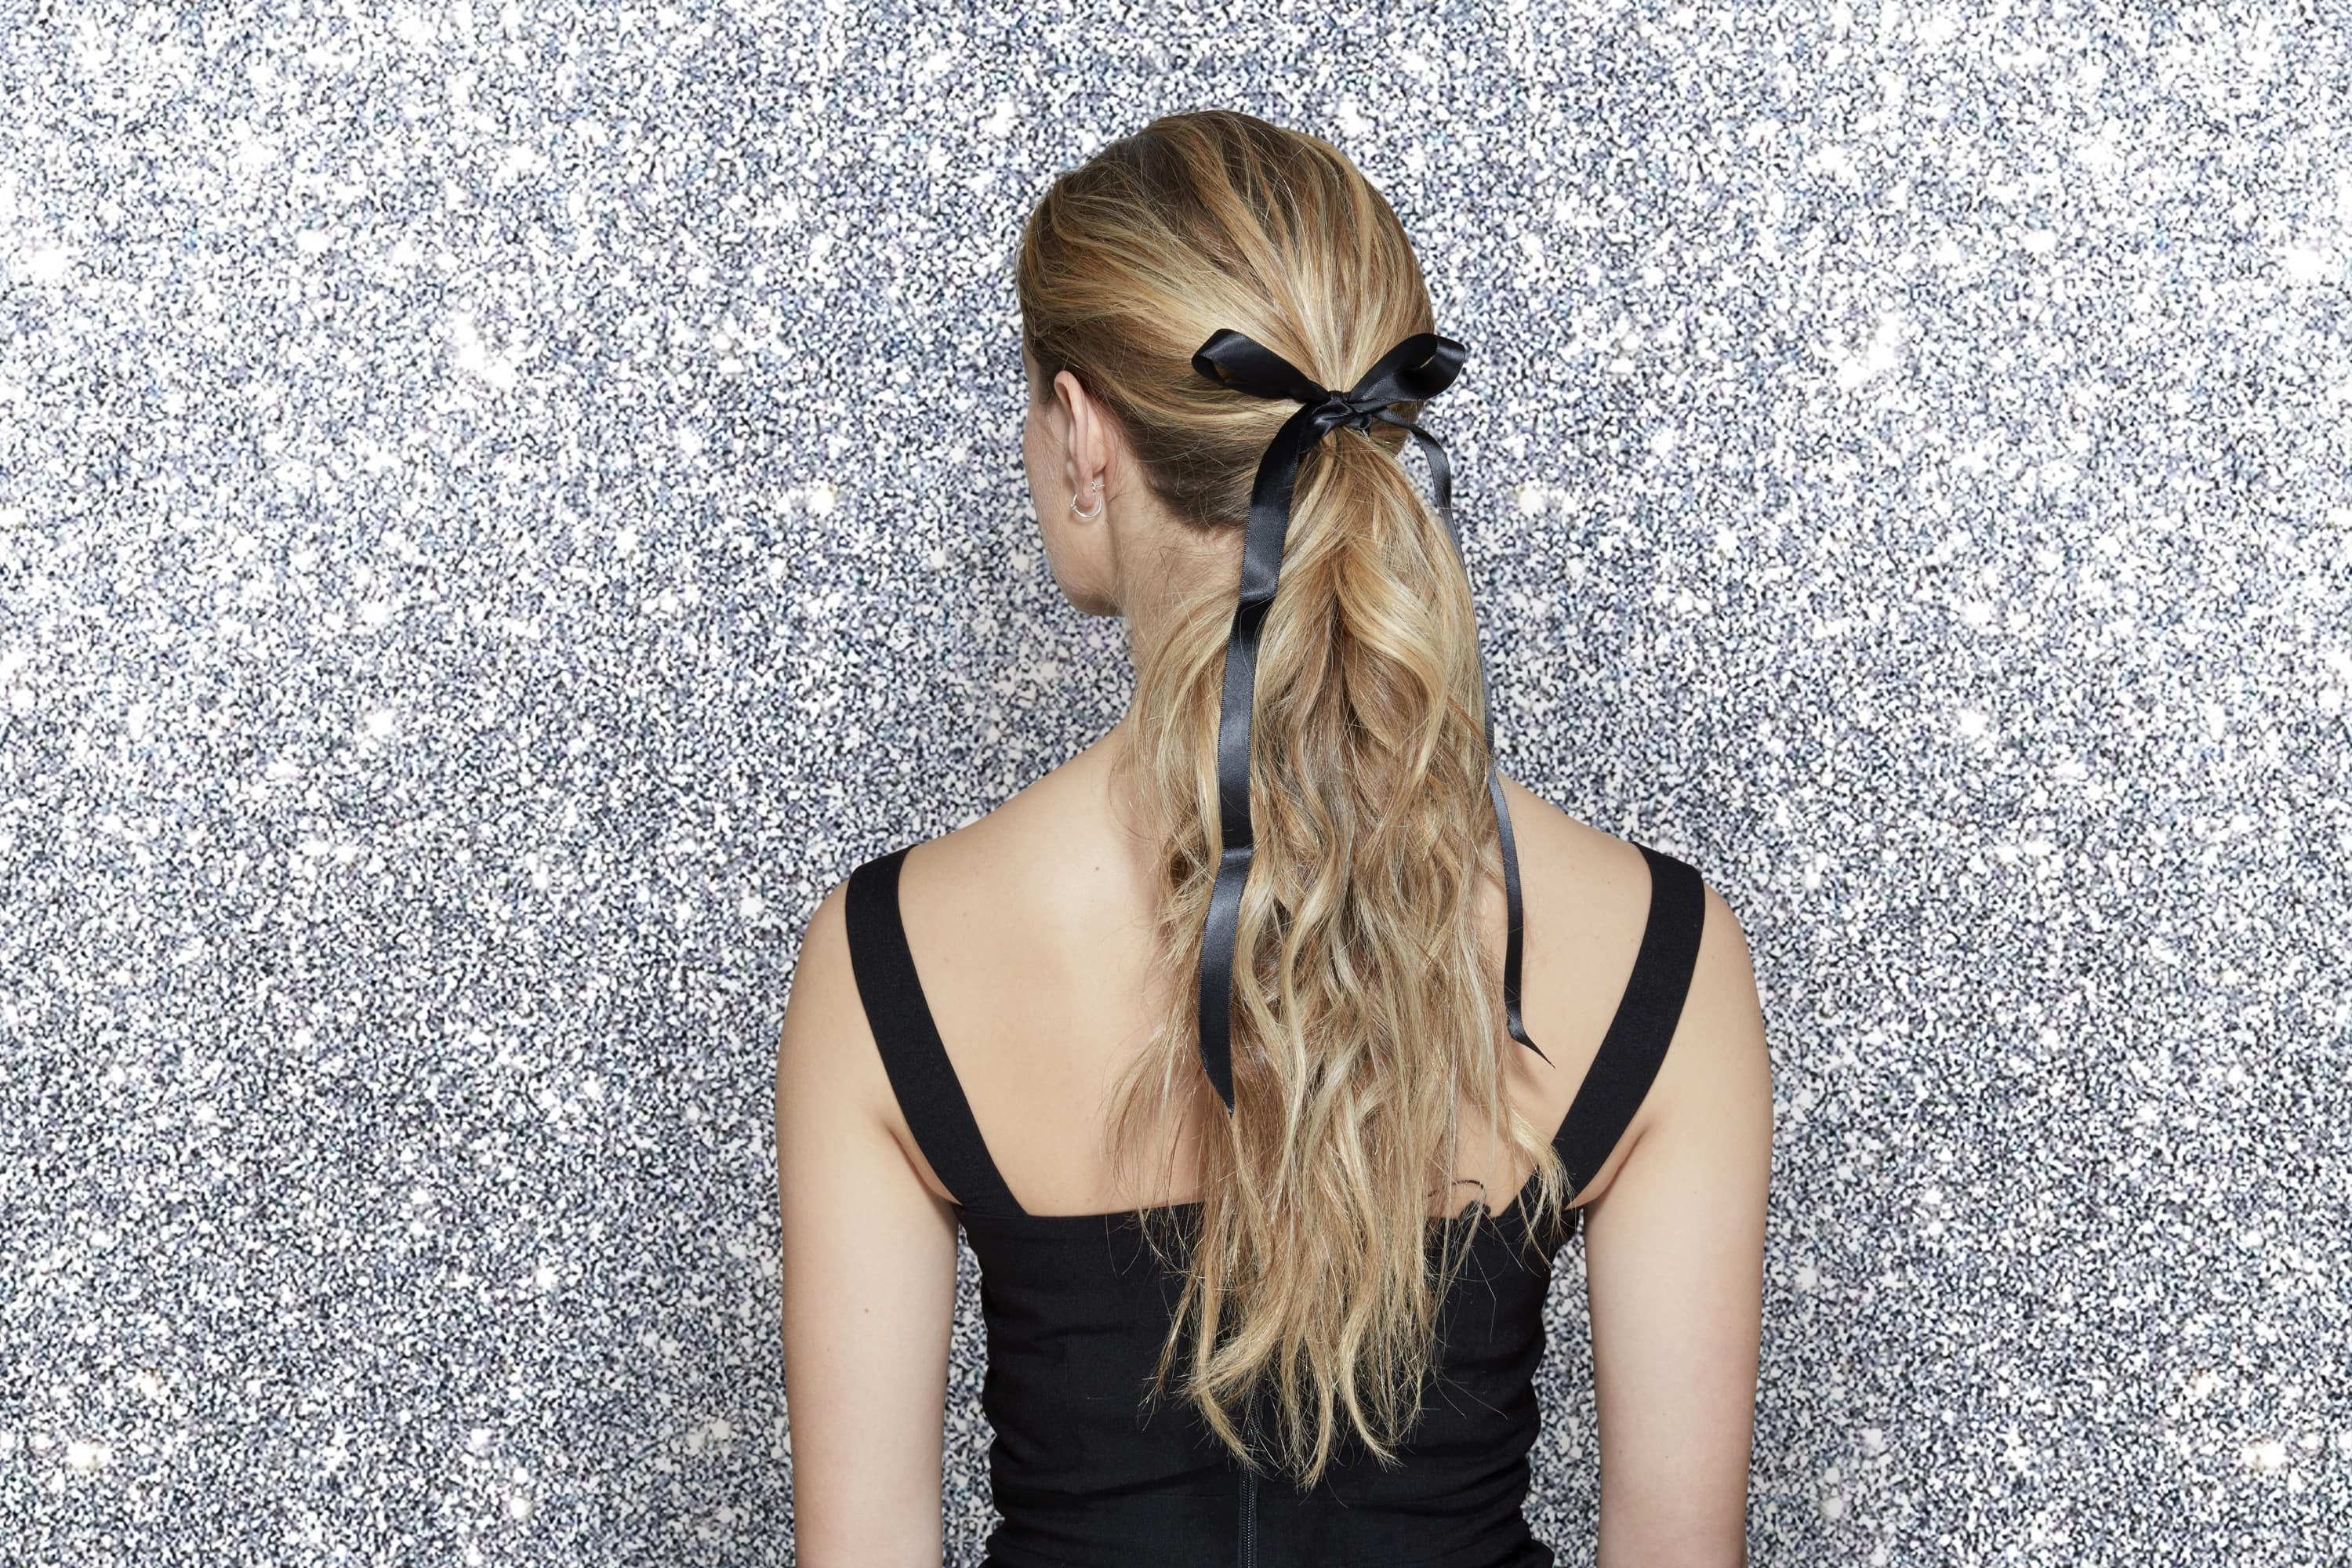 Back view of a blonde woman with long curly hair in a ponytail tied with a black ribbon, wearing a black dress and standing in front of a silver glitter background